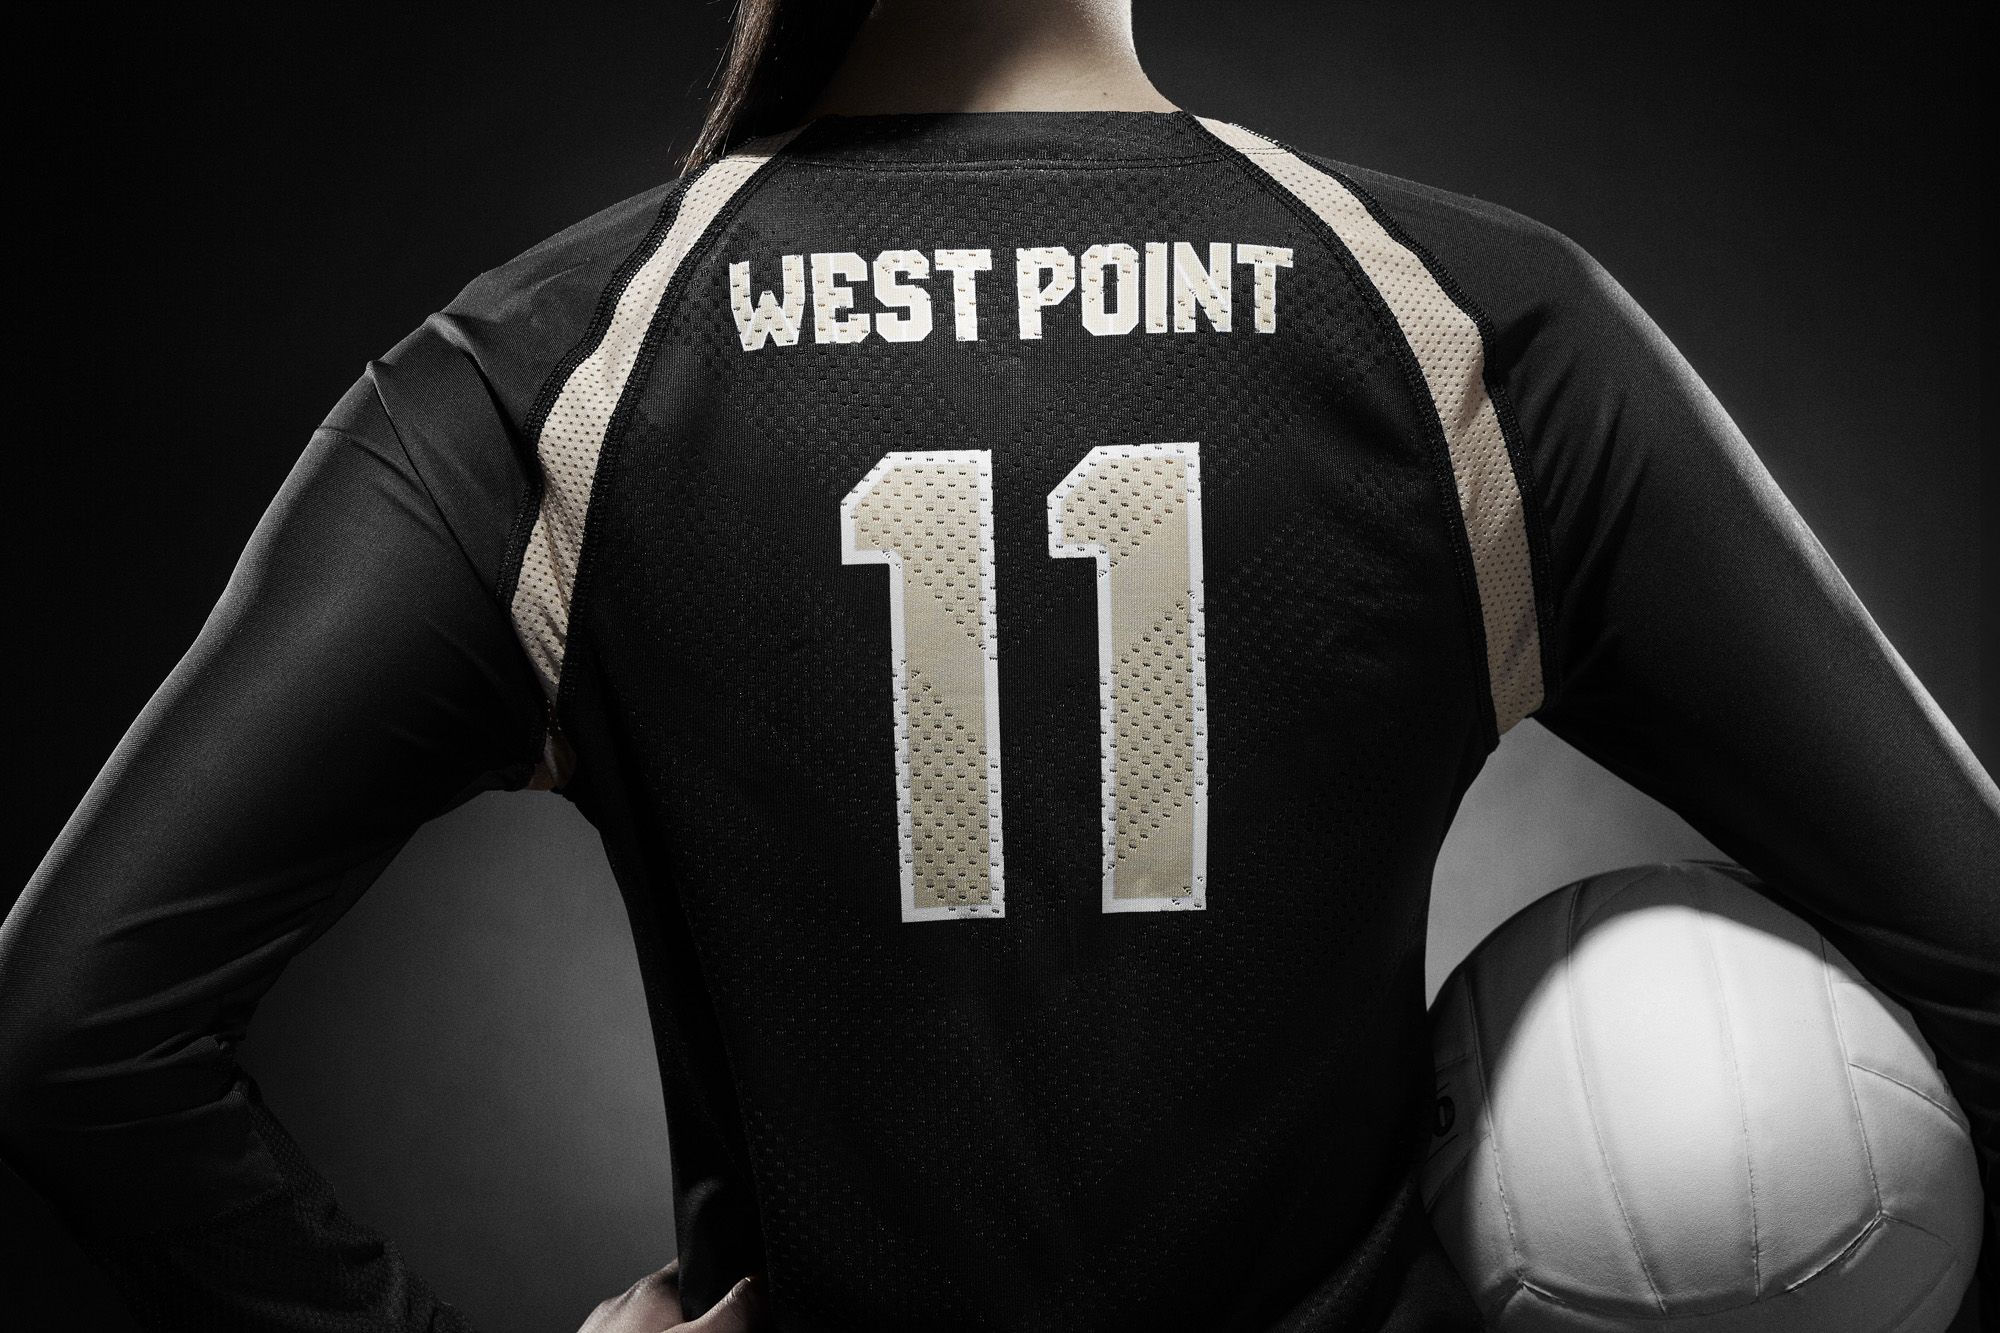 Army West Point West Point Uniform West Point Nike Volleyball